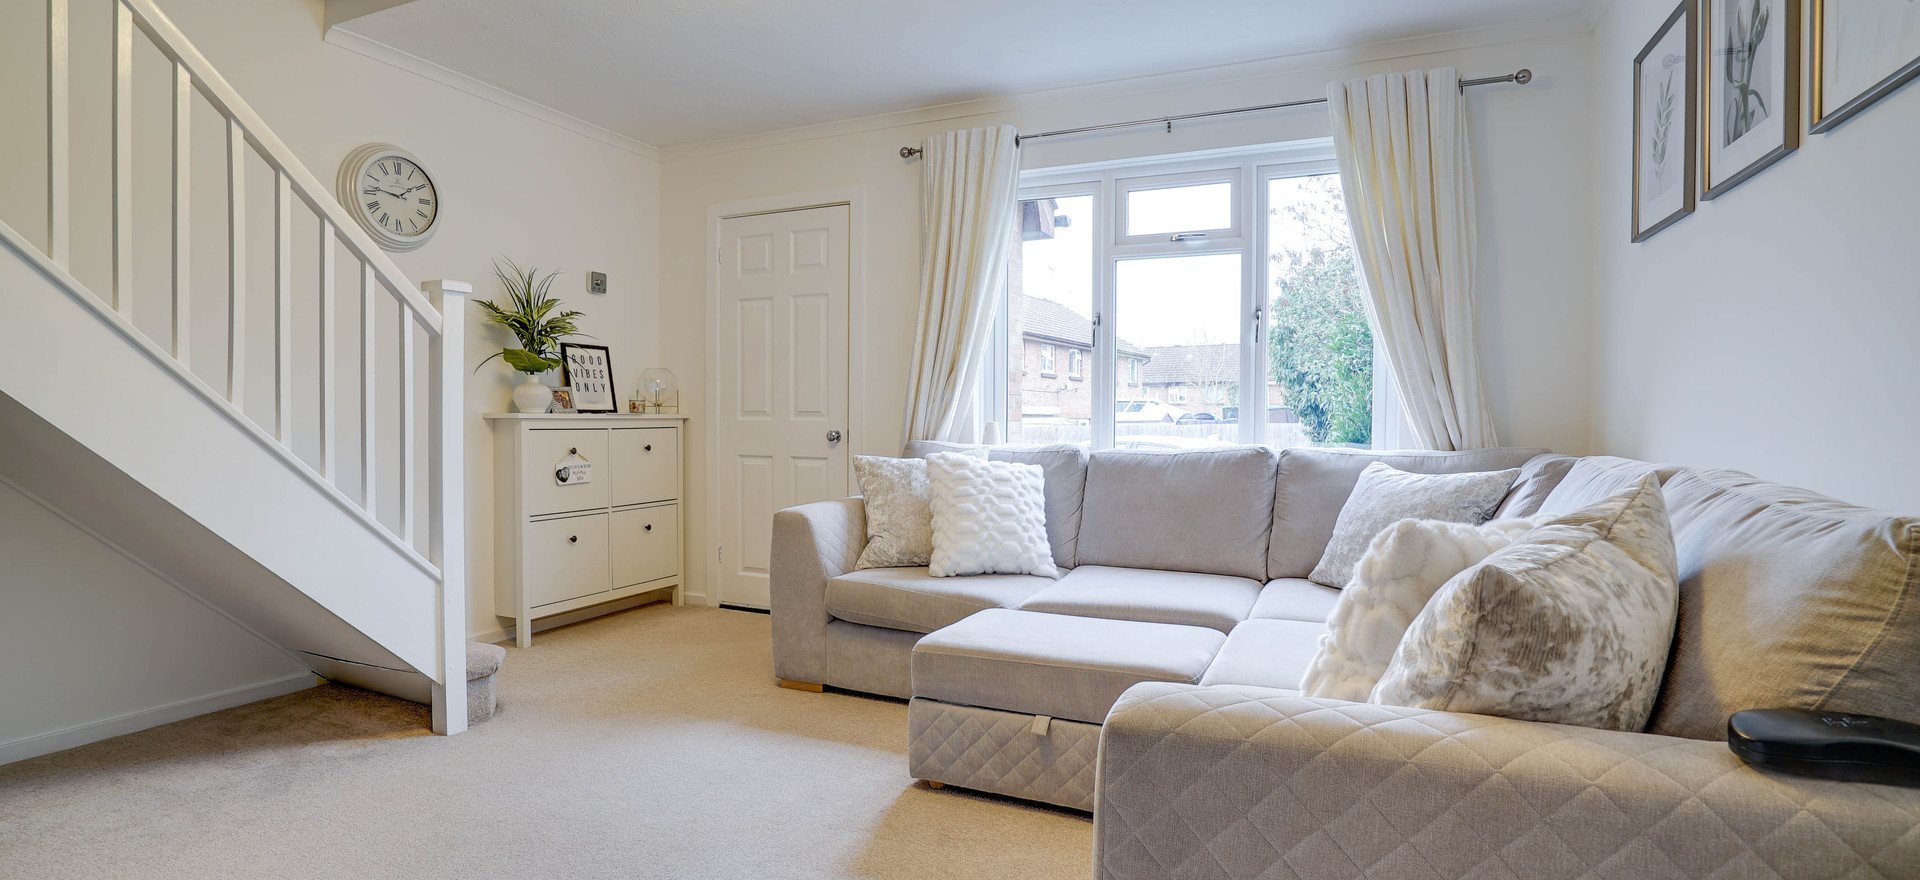 West Swindon Property Photographer.jpg